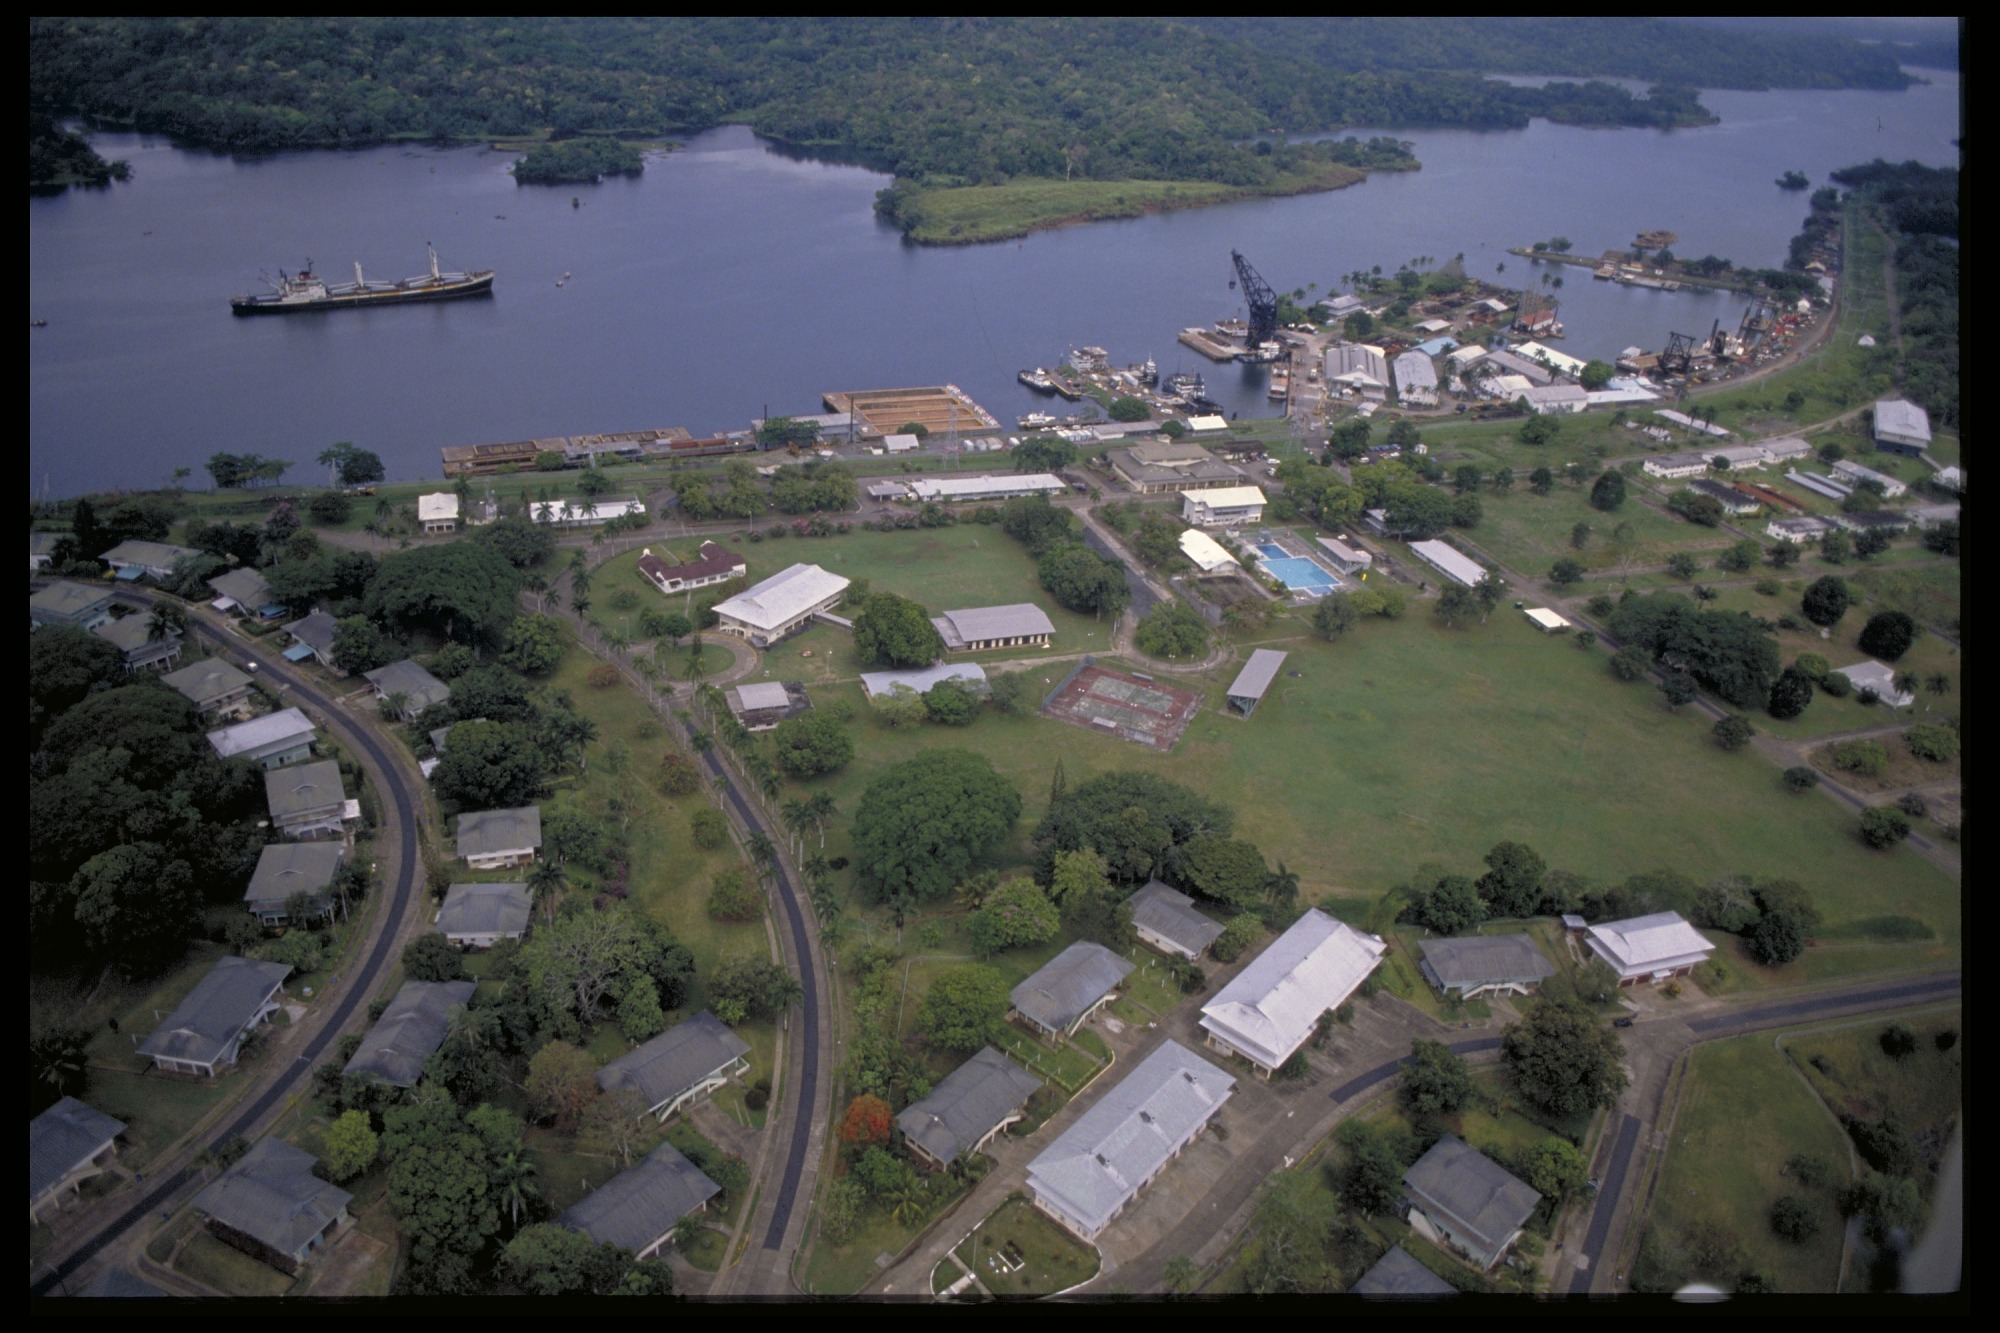 Preview of Aerial View of Gamboa/Panama Canal, Panama, STRI